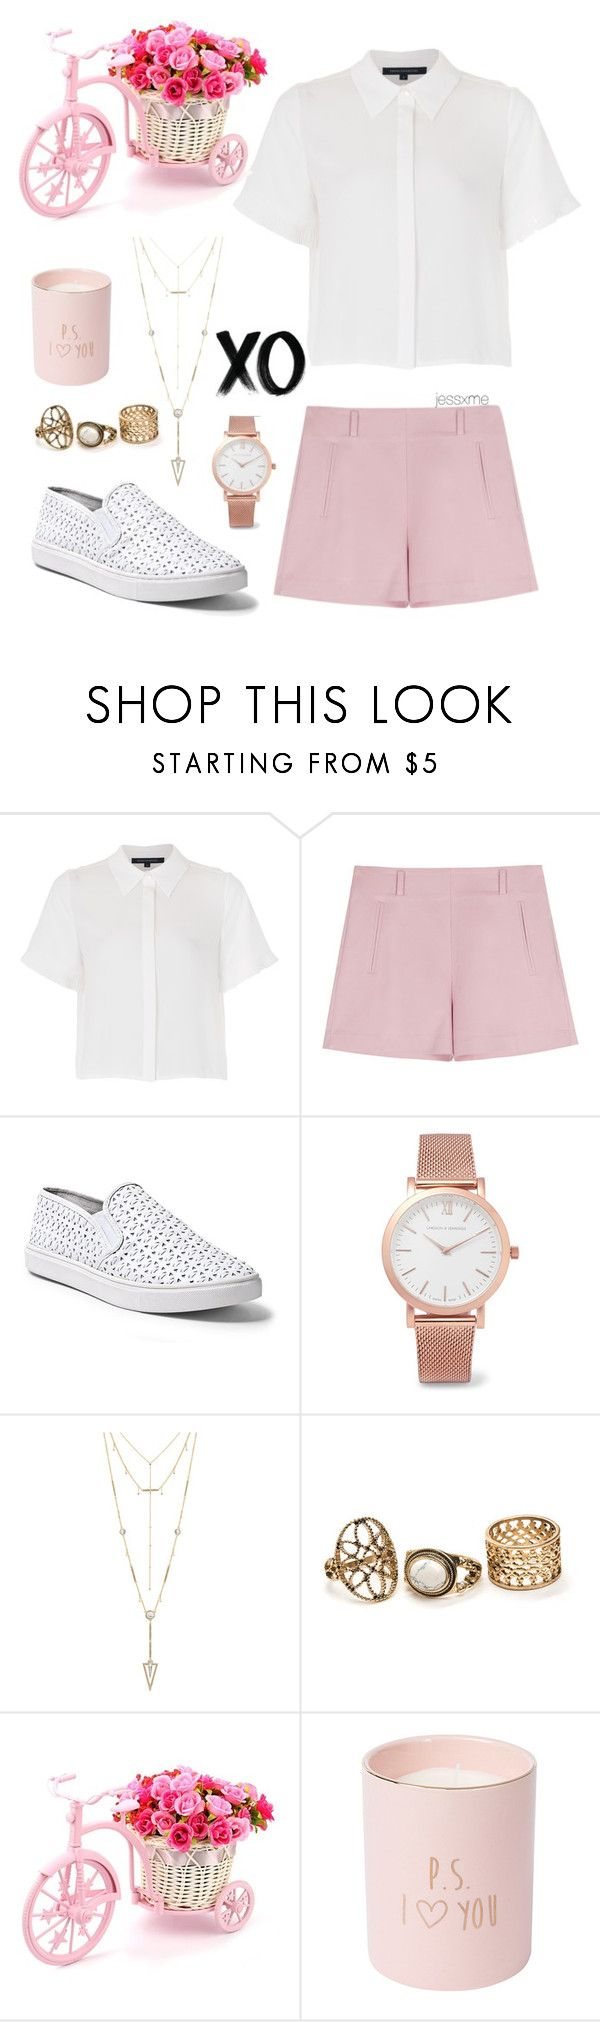 """""""Untitled #214"""" by jessxme ❤ liked on Polyvore featuring French Connection, Steve Madden, Larsson & Jennings, House of Harlow 1960 and xO Design"""